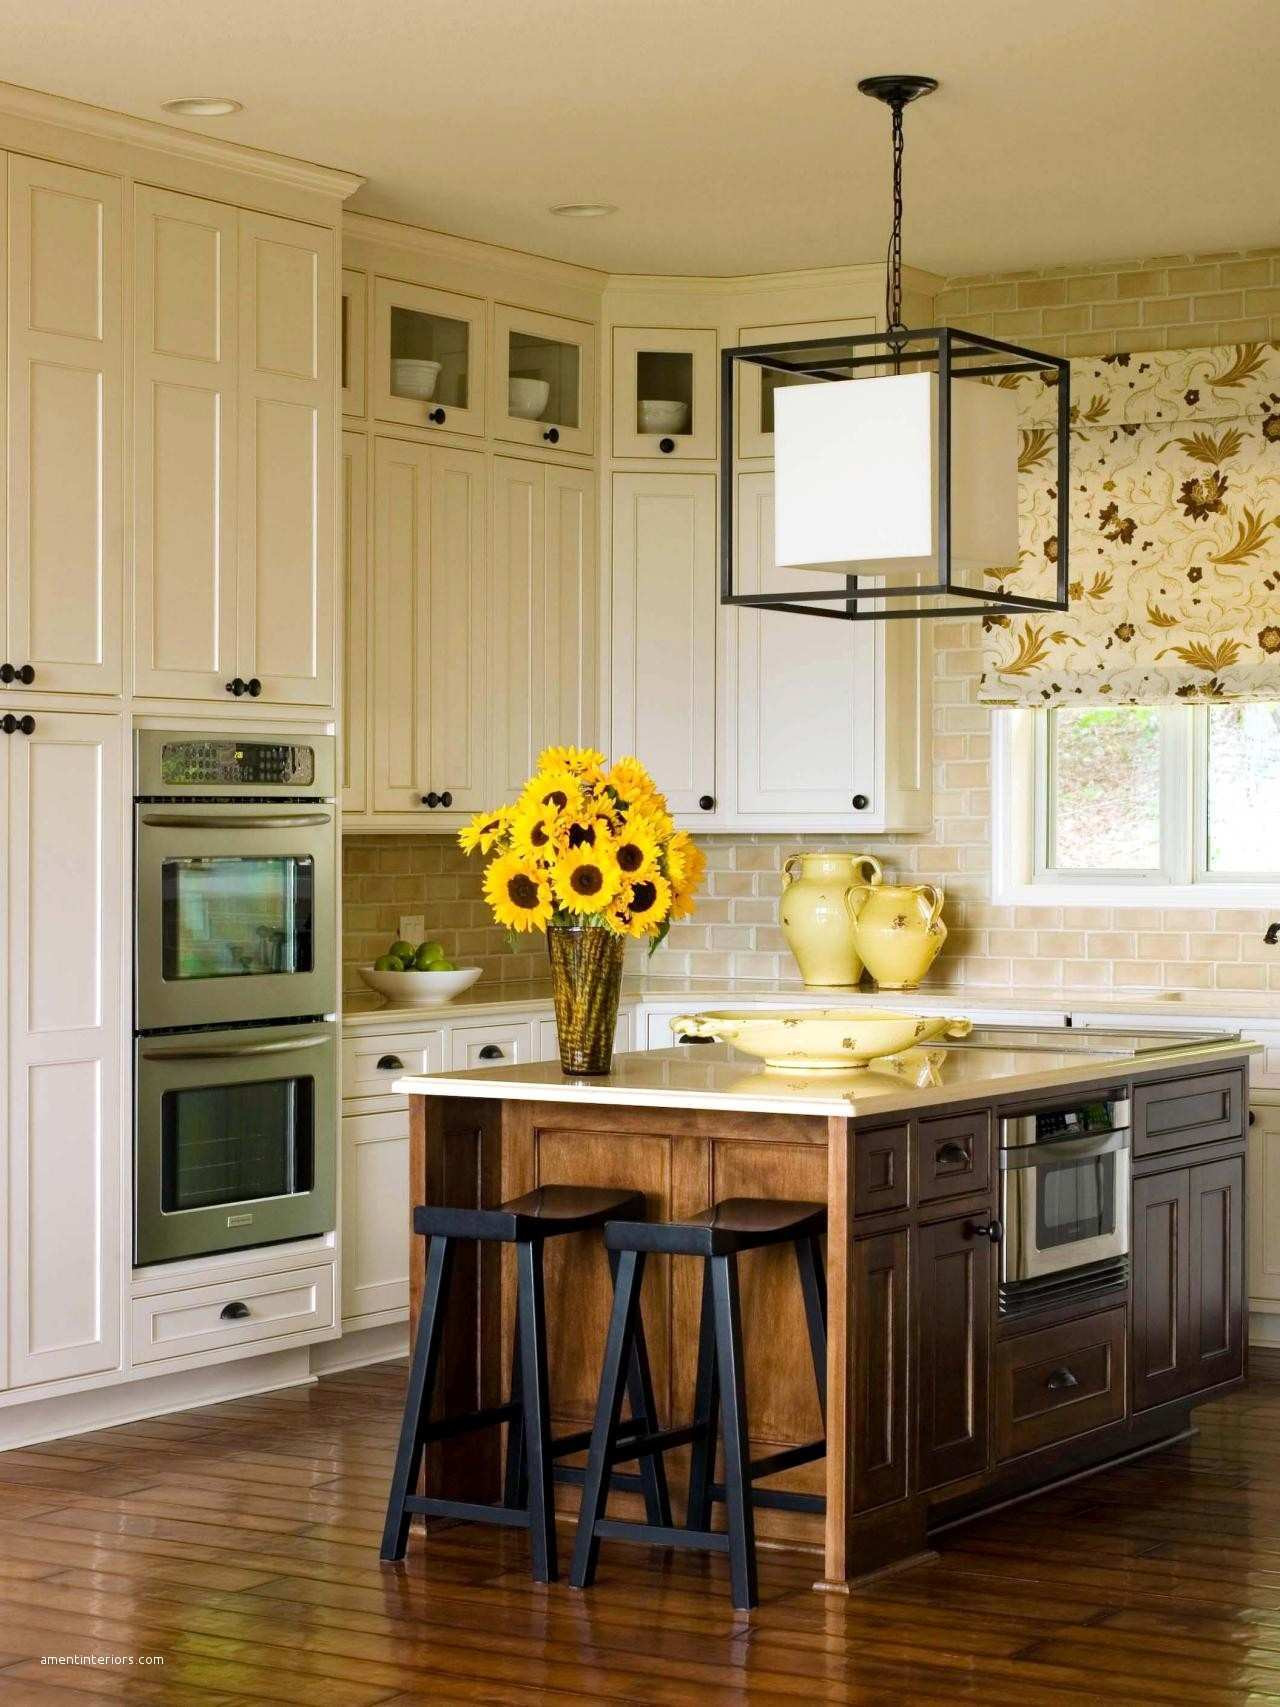 how much do new hardwood floors cost of how much do kitchen cabinets cost styling up your refinish kitchen for how much do kitchen cabinets cost styling up your refinish kitchen cabinets ideas best of cabinets refacing 0d design